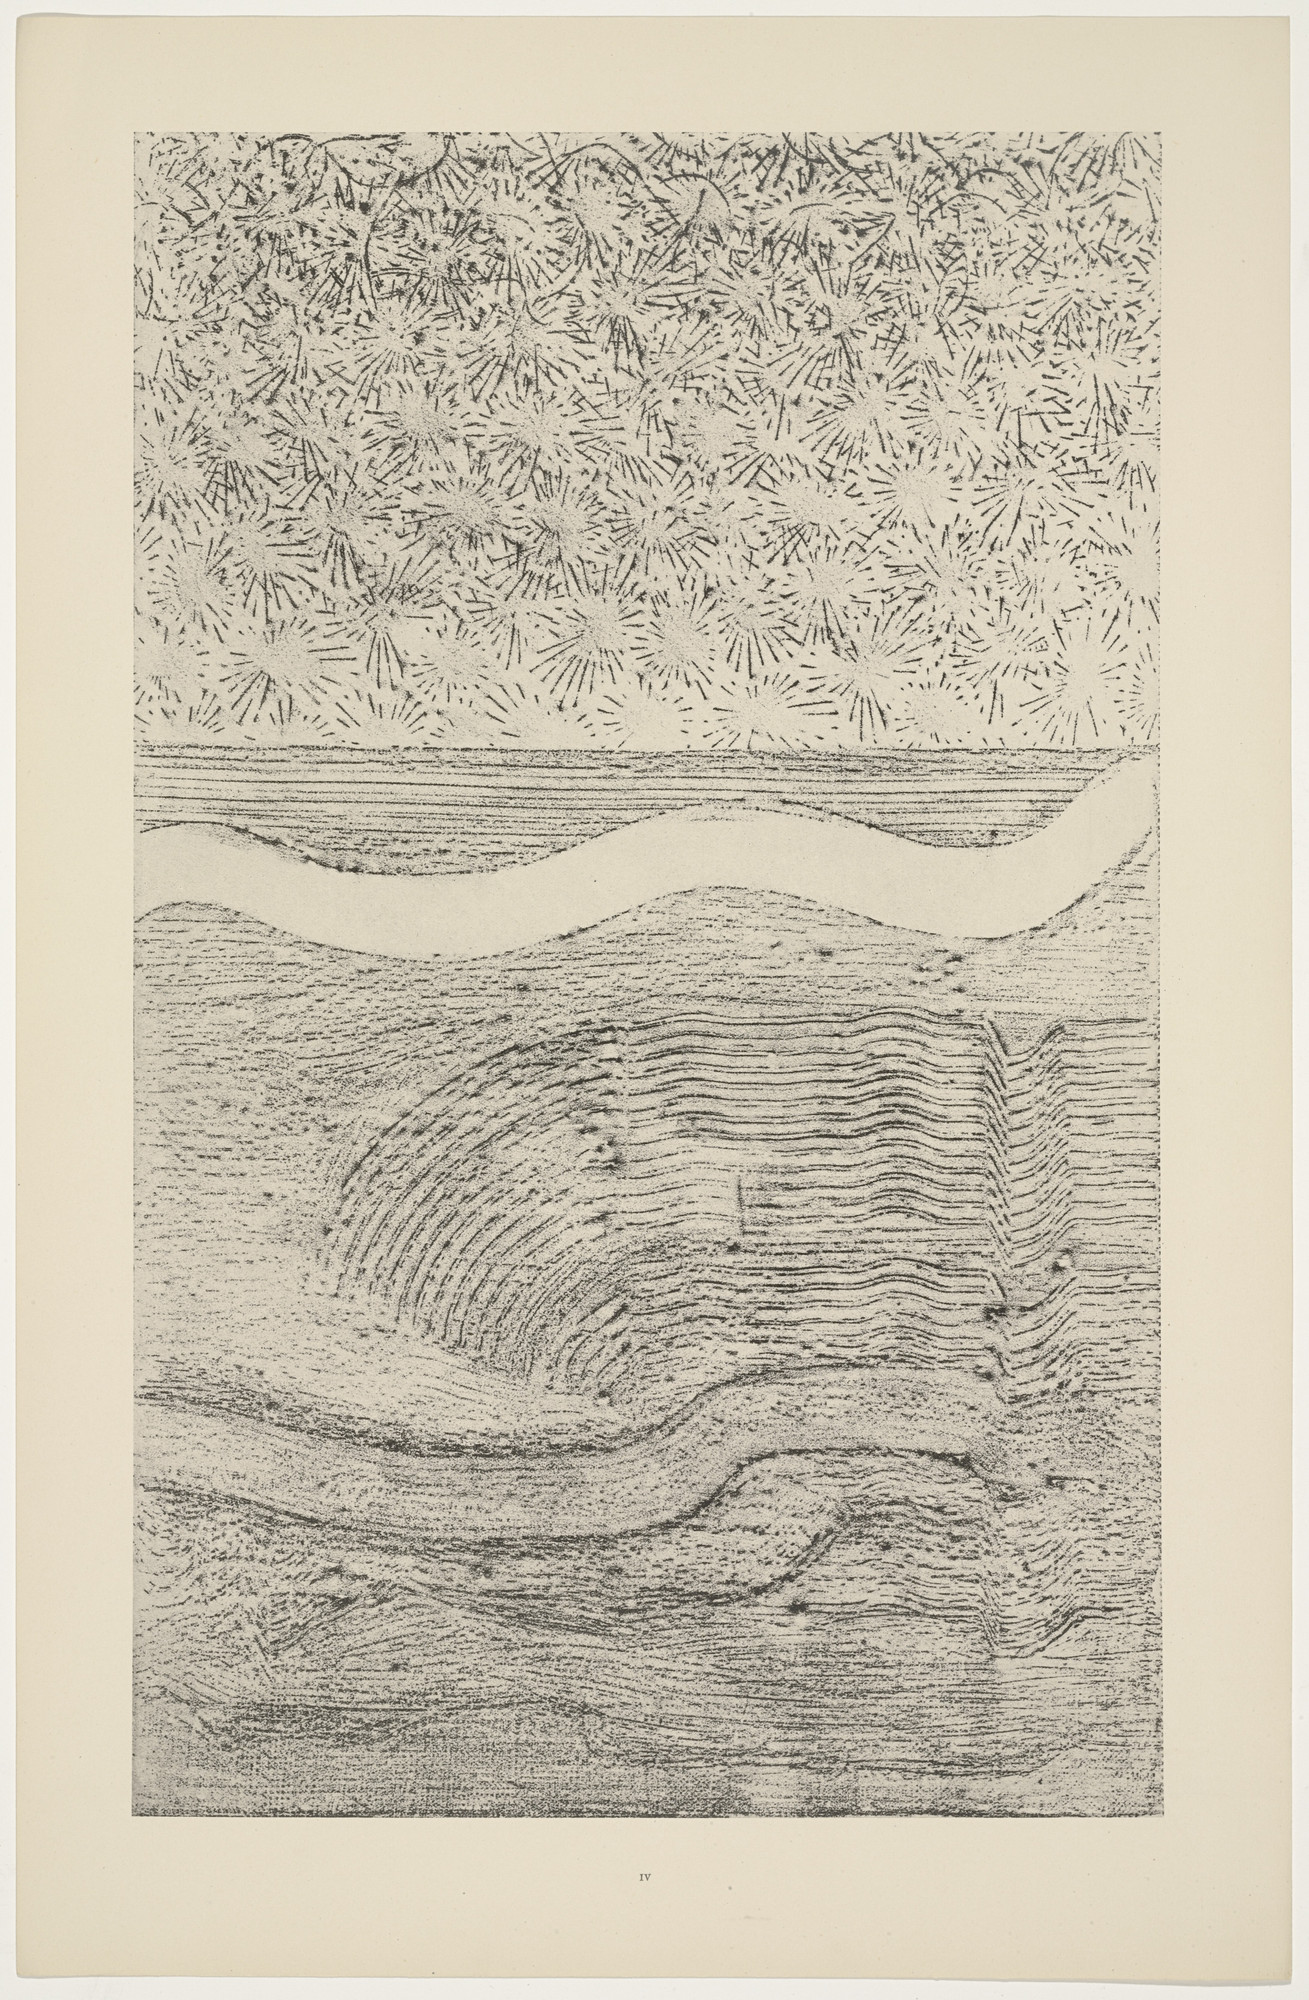 Max Ernst. Iceflower Shawl and Gulf Stream (Le Châle à fleurs givre) from Natural History (Histoire naturelle). c. 1925, published 1926